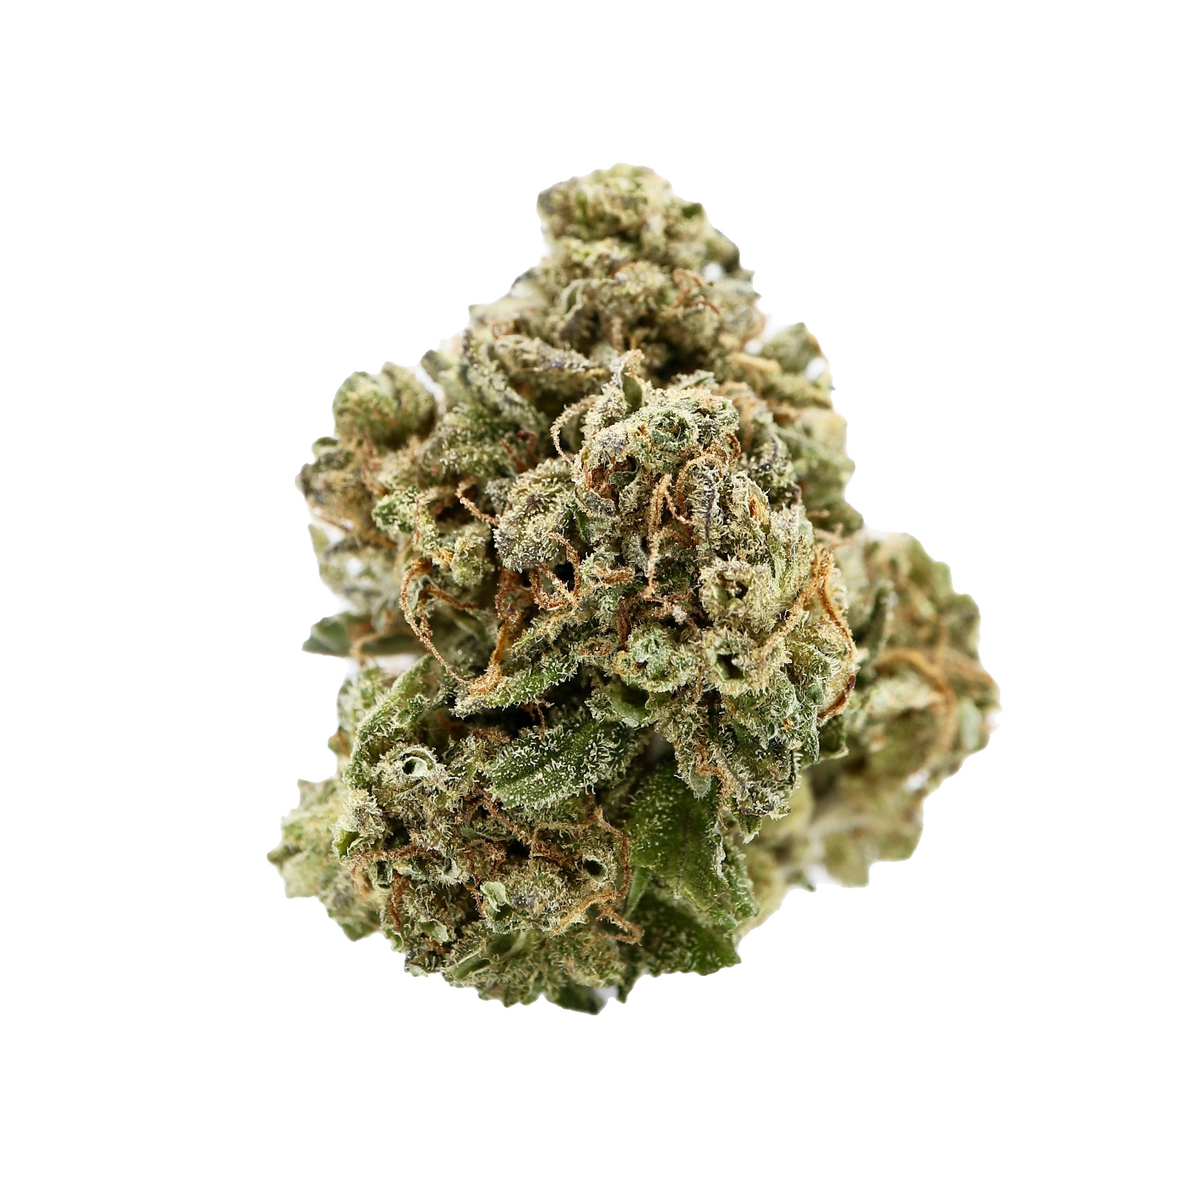 Compassion Lime Dried Cannabis Flower